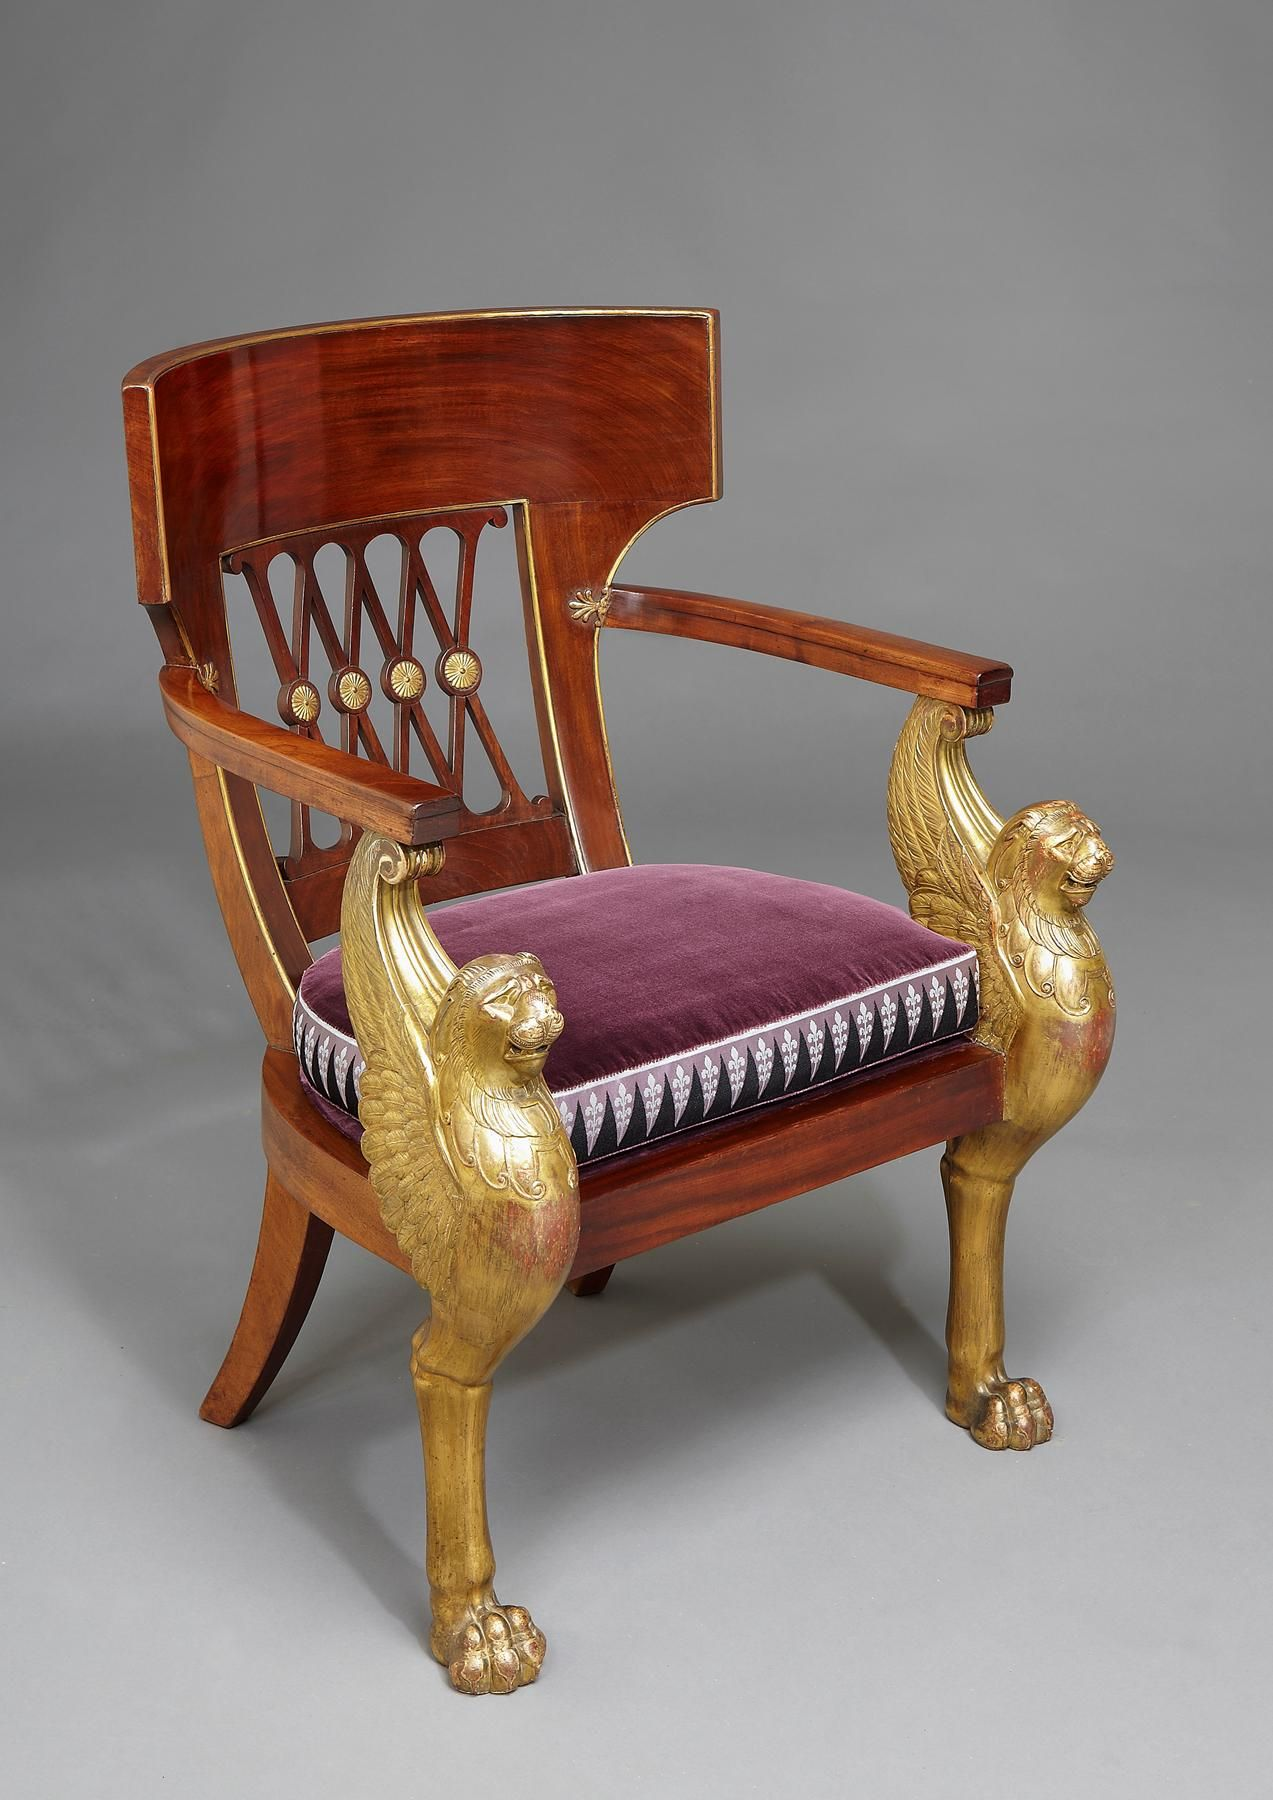 A French Consulat Mahogany And Carved Giltwood Fauteuil De Bureau By Jacob Freres Based On A Design Fauteuil Bureau Fauteuil Bureau Design Mobilier De France